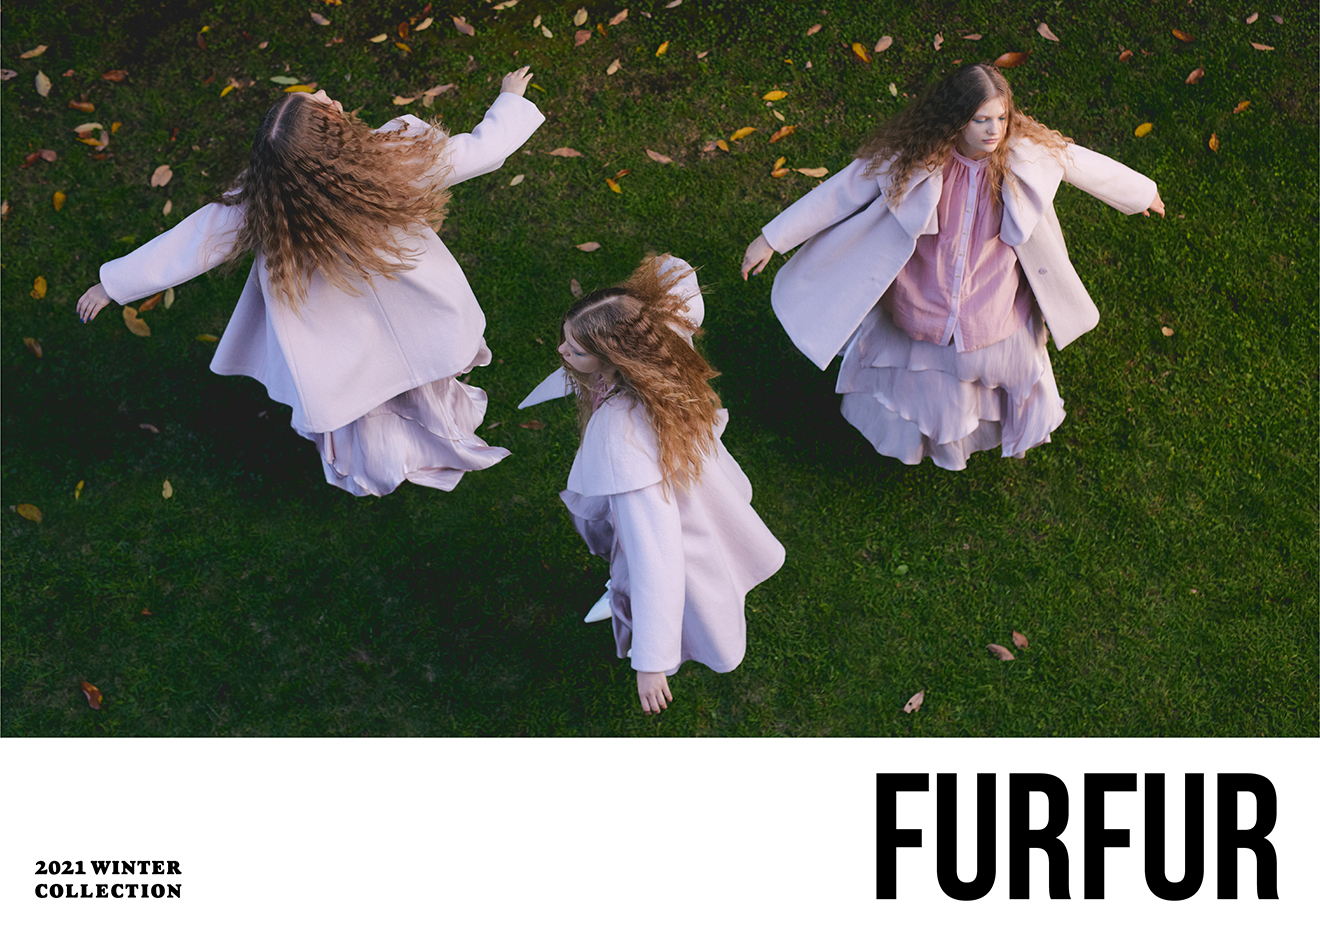 FURFUR 2021 WINTER COLLECTION